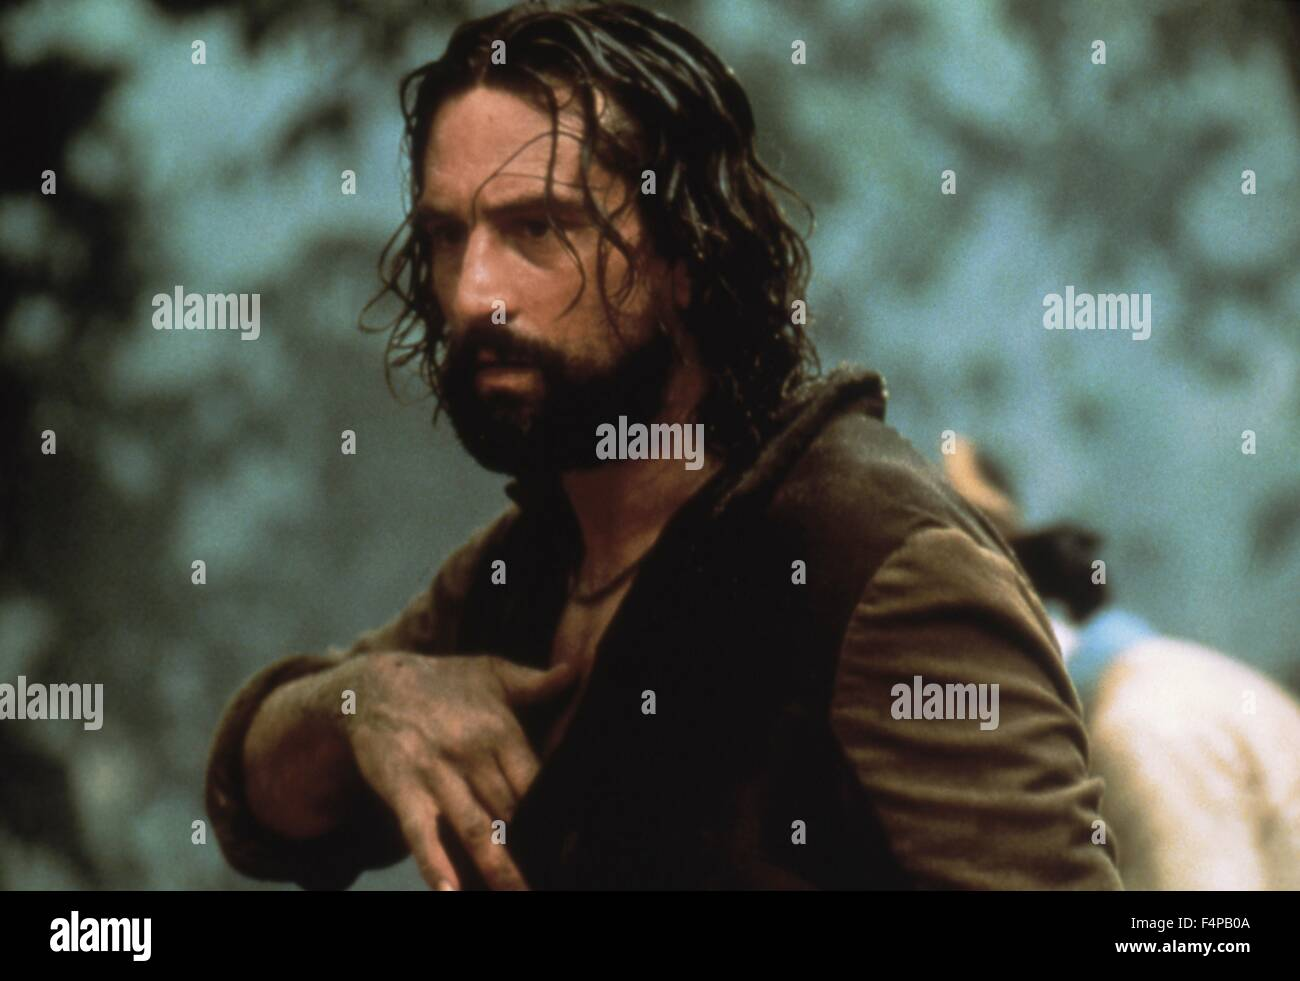 Robert de Niro / The Mission 1986 directed by Roland Joffe - Stock Image